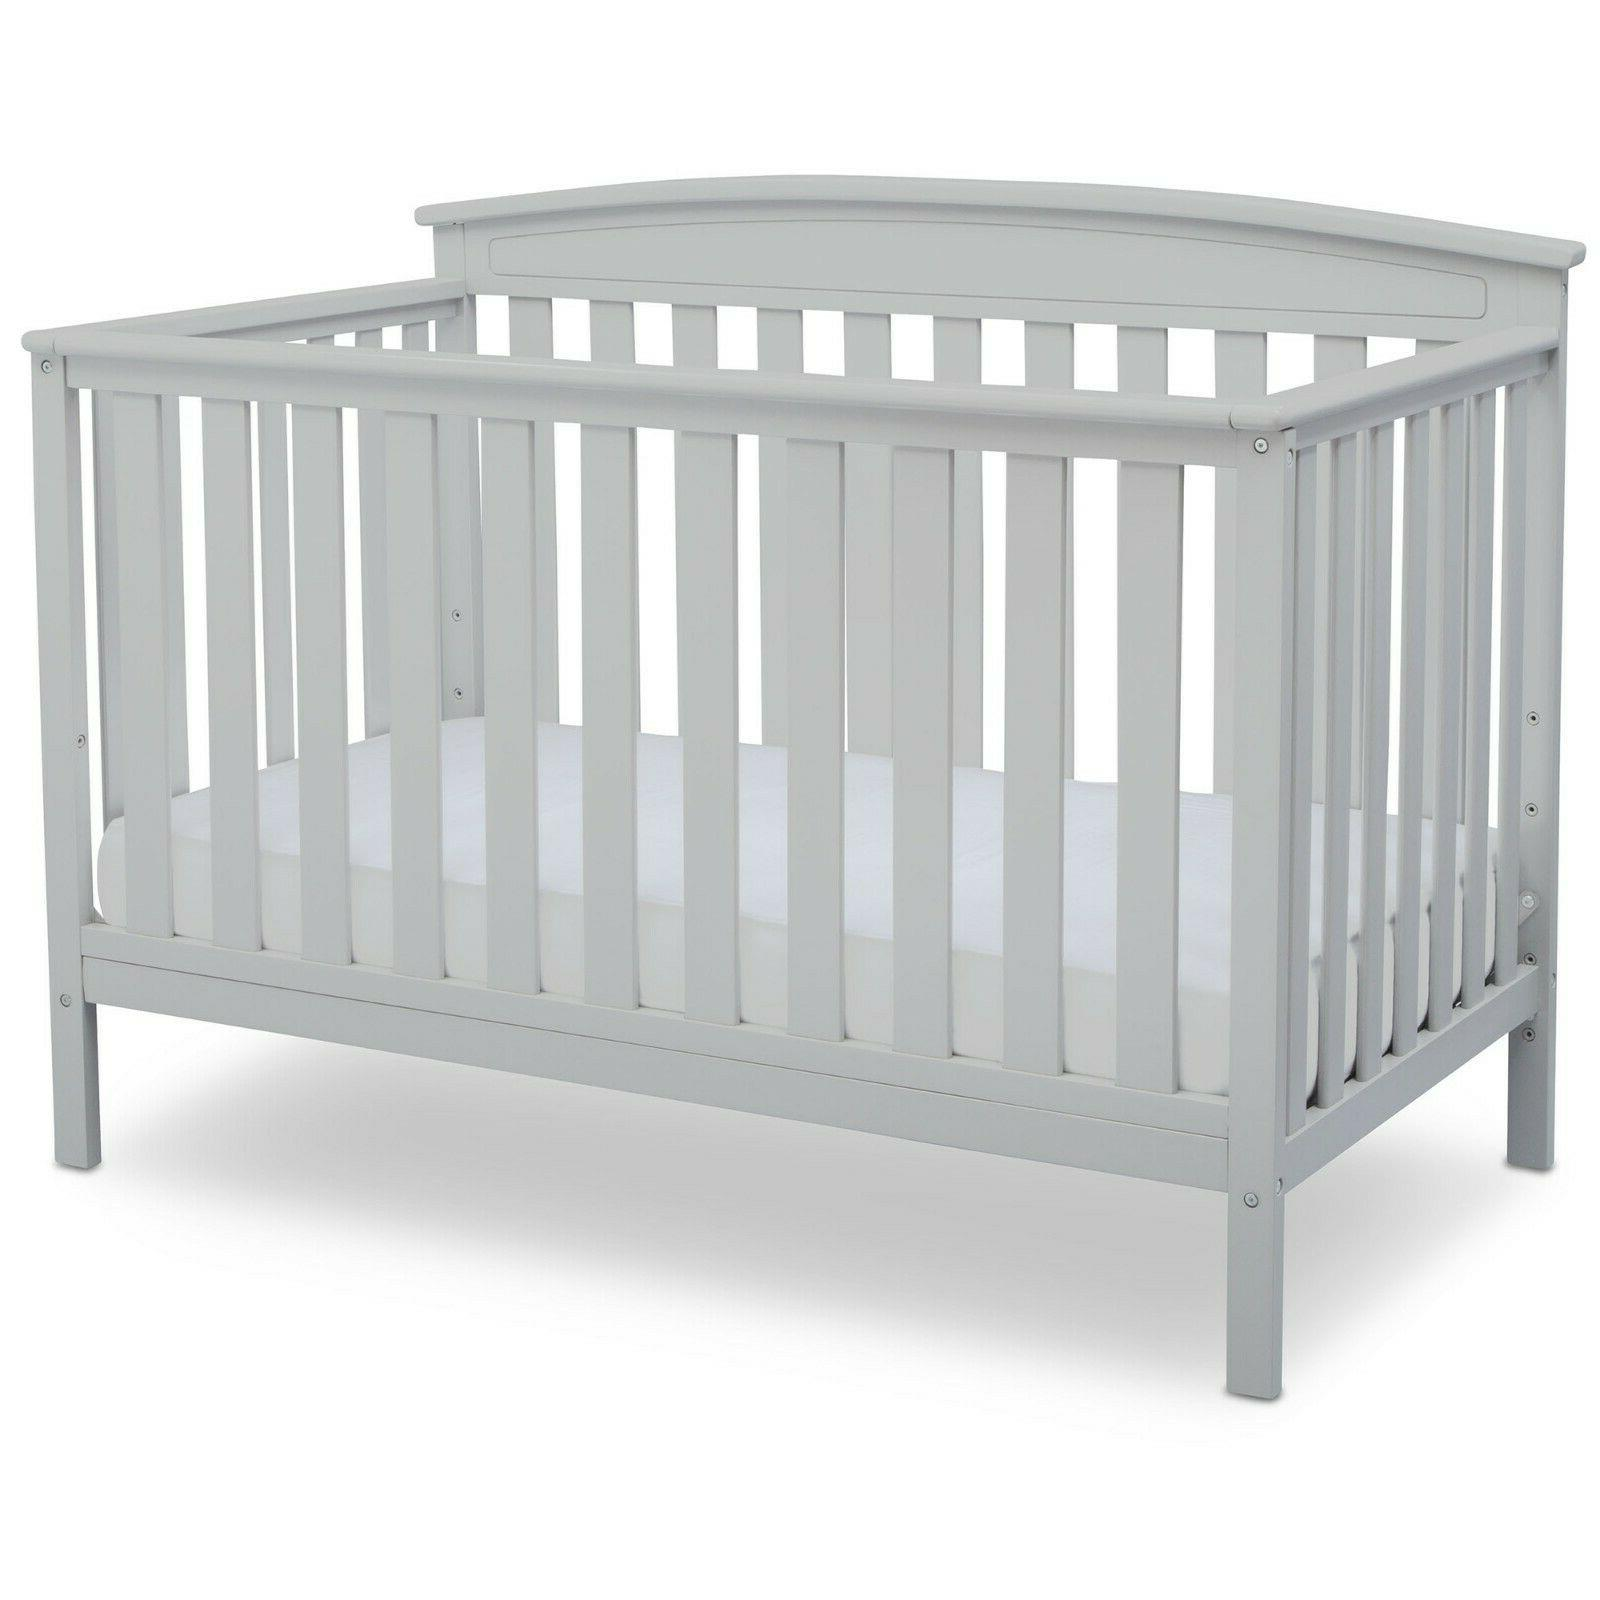 Delta Children's Products Gateway 4-in-1 Fixed-Side Crib,